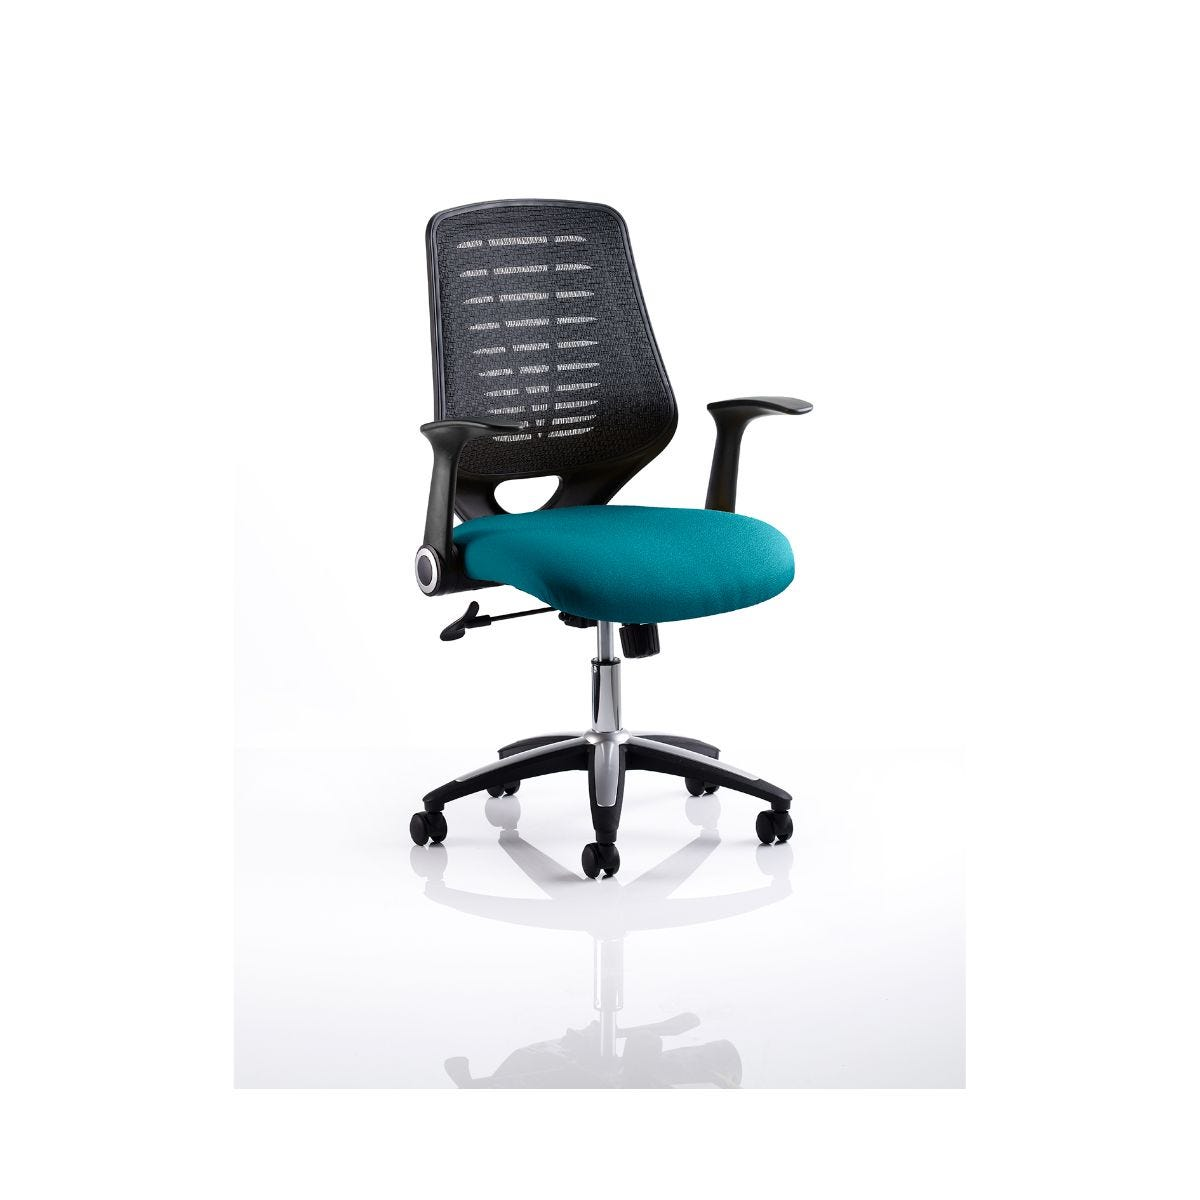 Relay Mesh Back Office Chair, Maringa